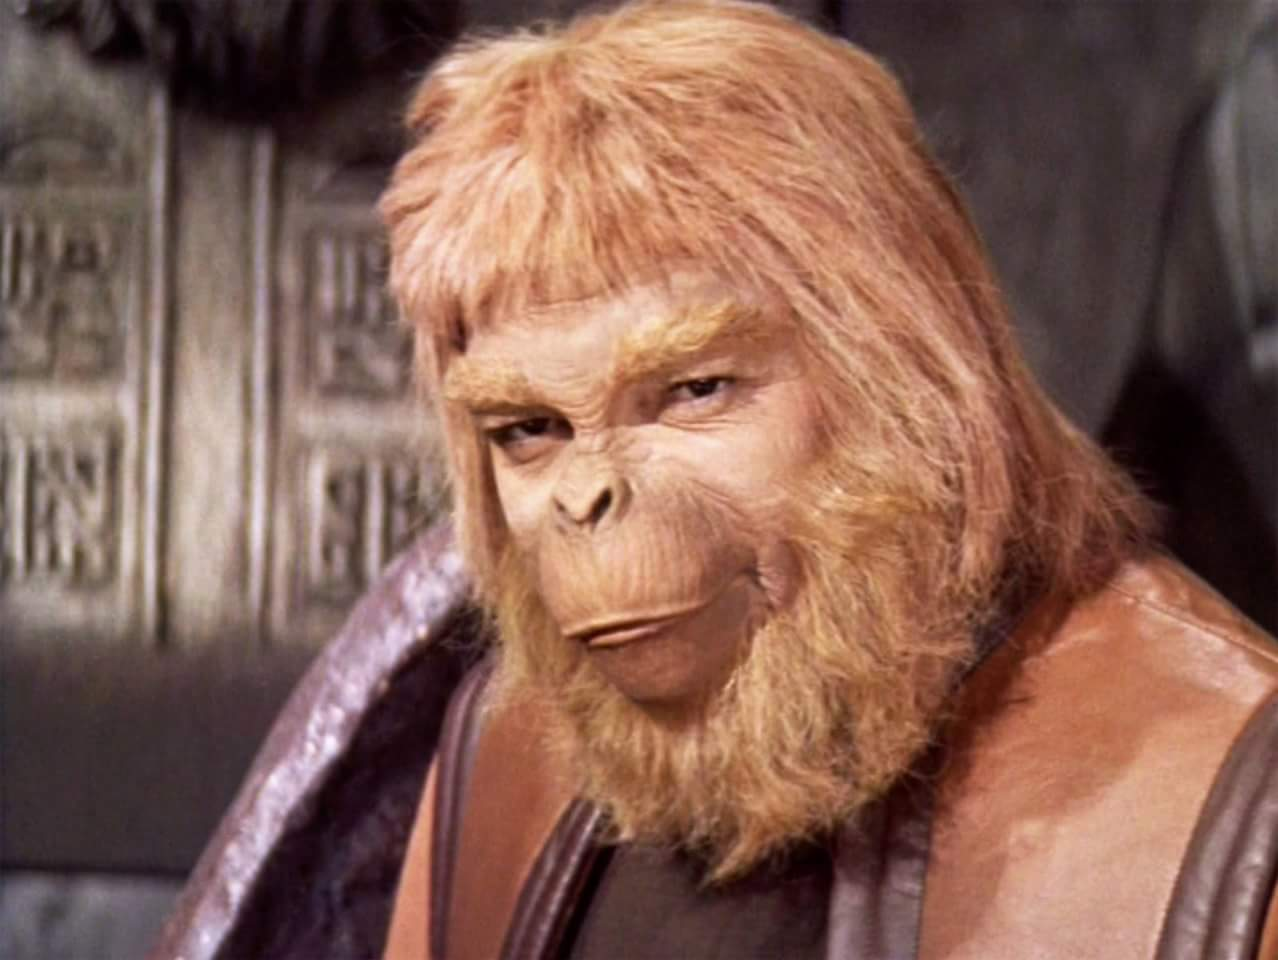 Archives Of The Apes: Planet Of The Apes (1968) Part 36